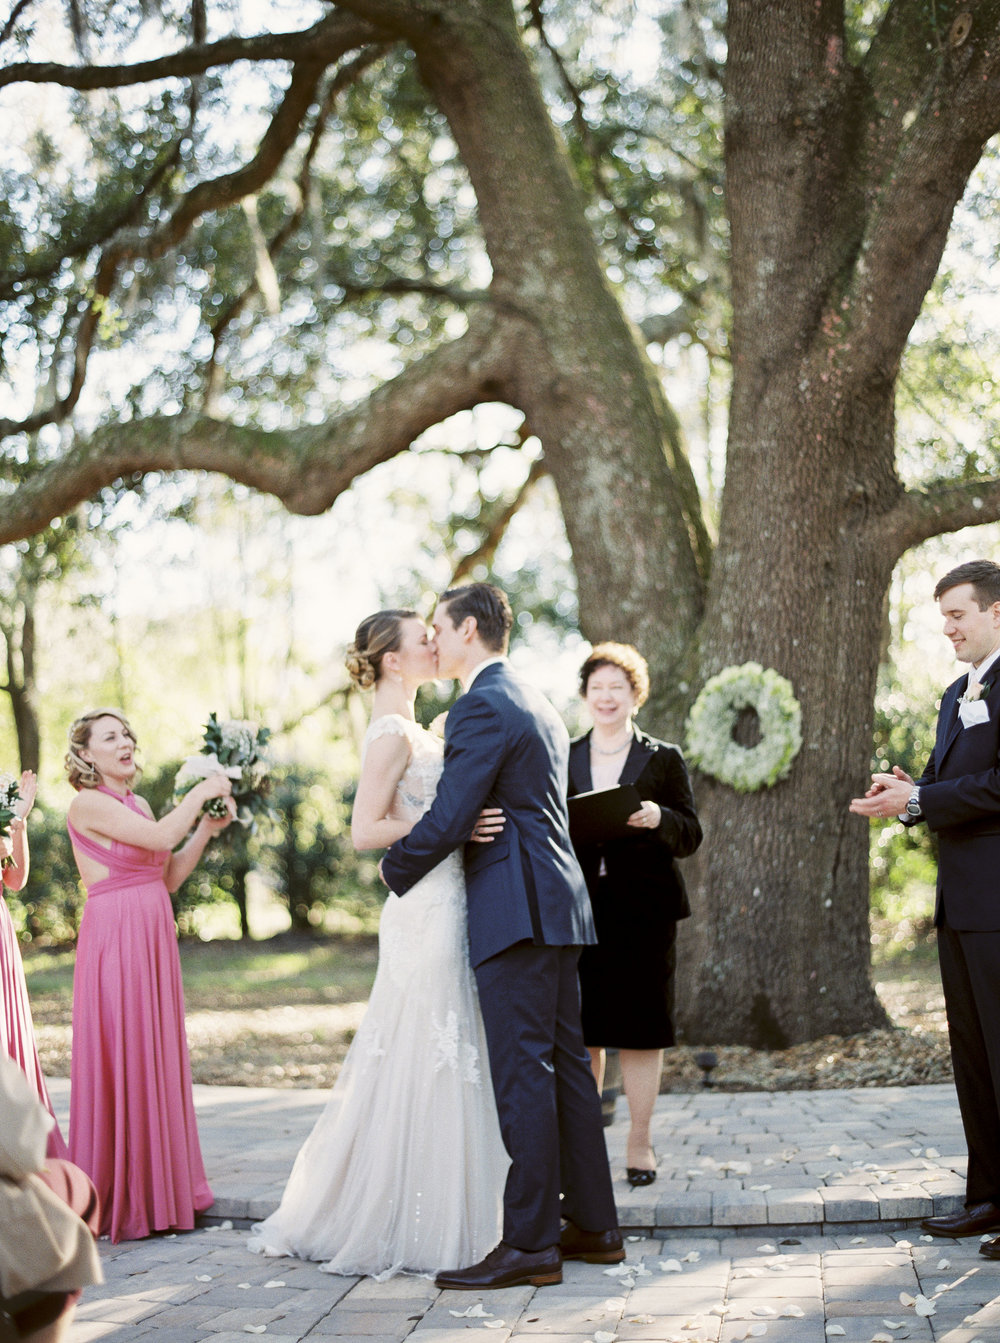 Best time of day to get married outside for amazing pictures. Amanda Lenhardt Photography, Dallas and Destination.